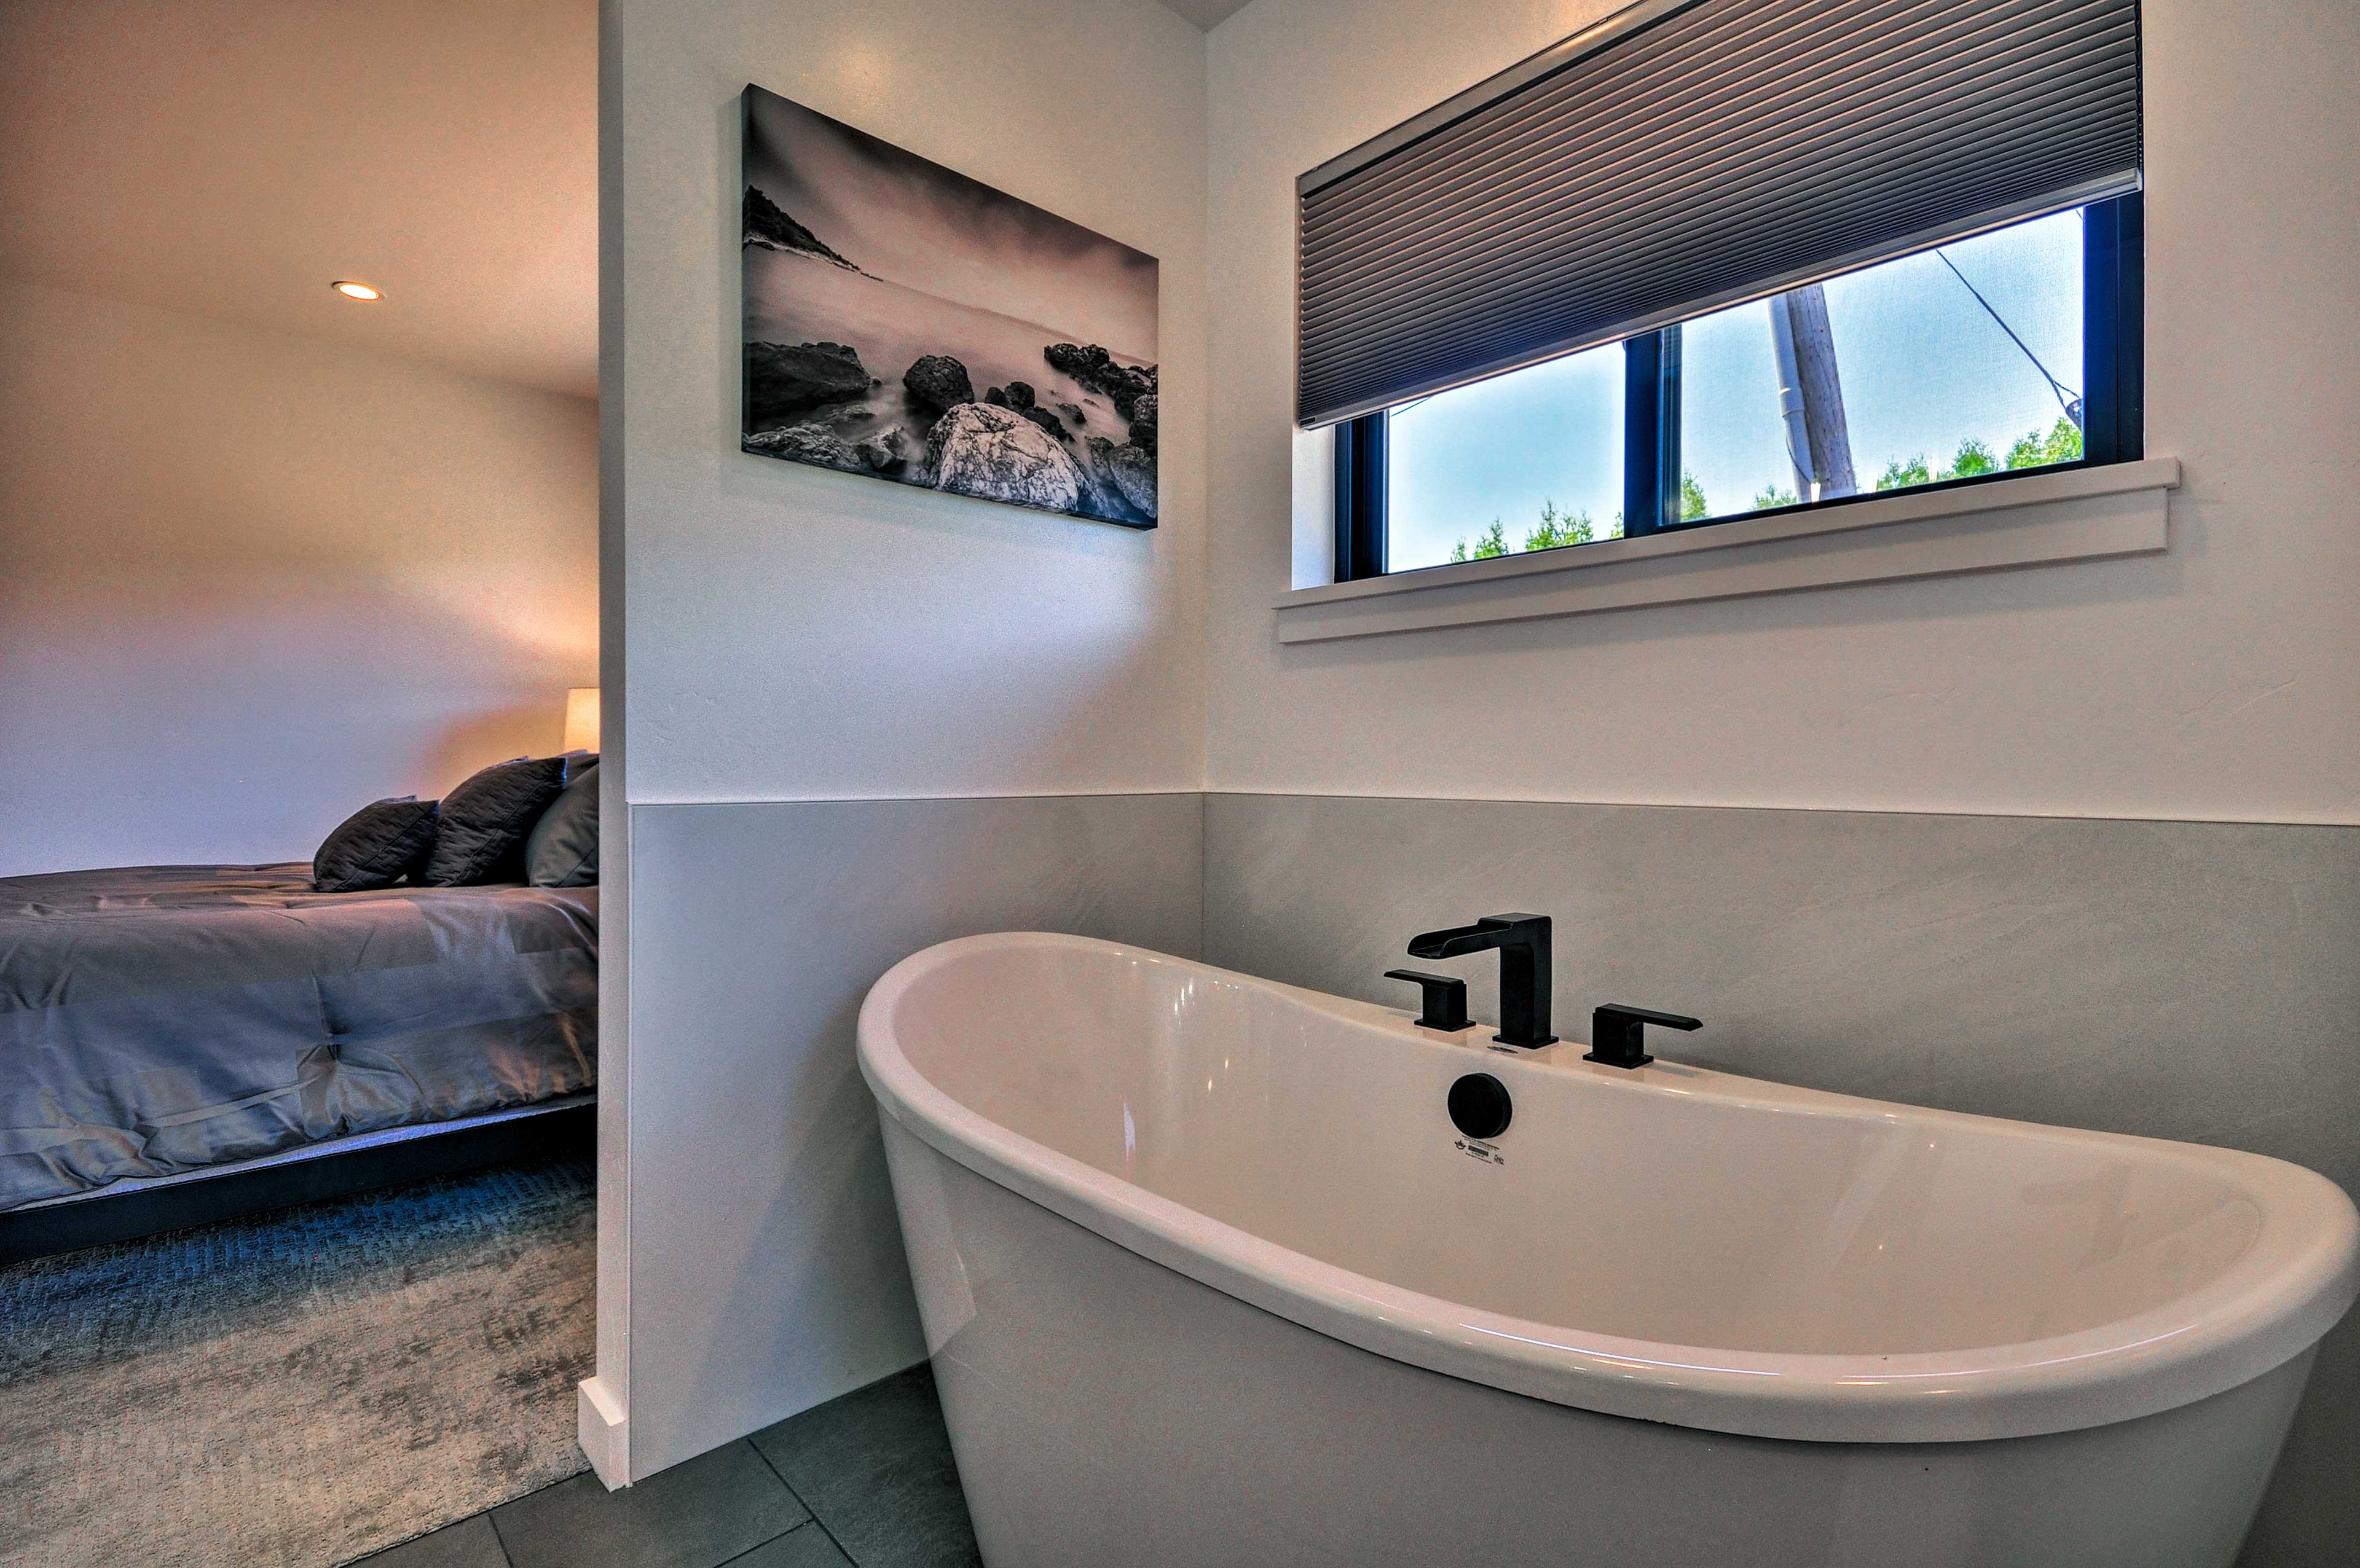 Enjoy a relaxing soak in the large tub.